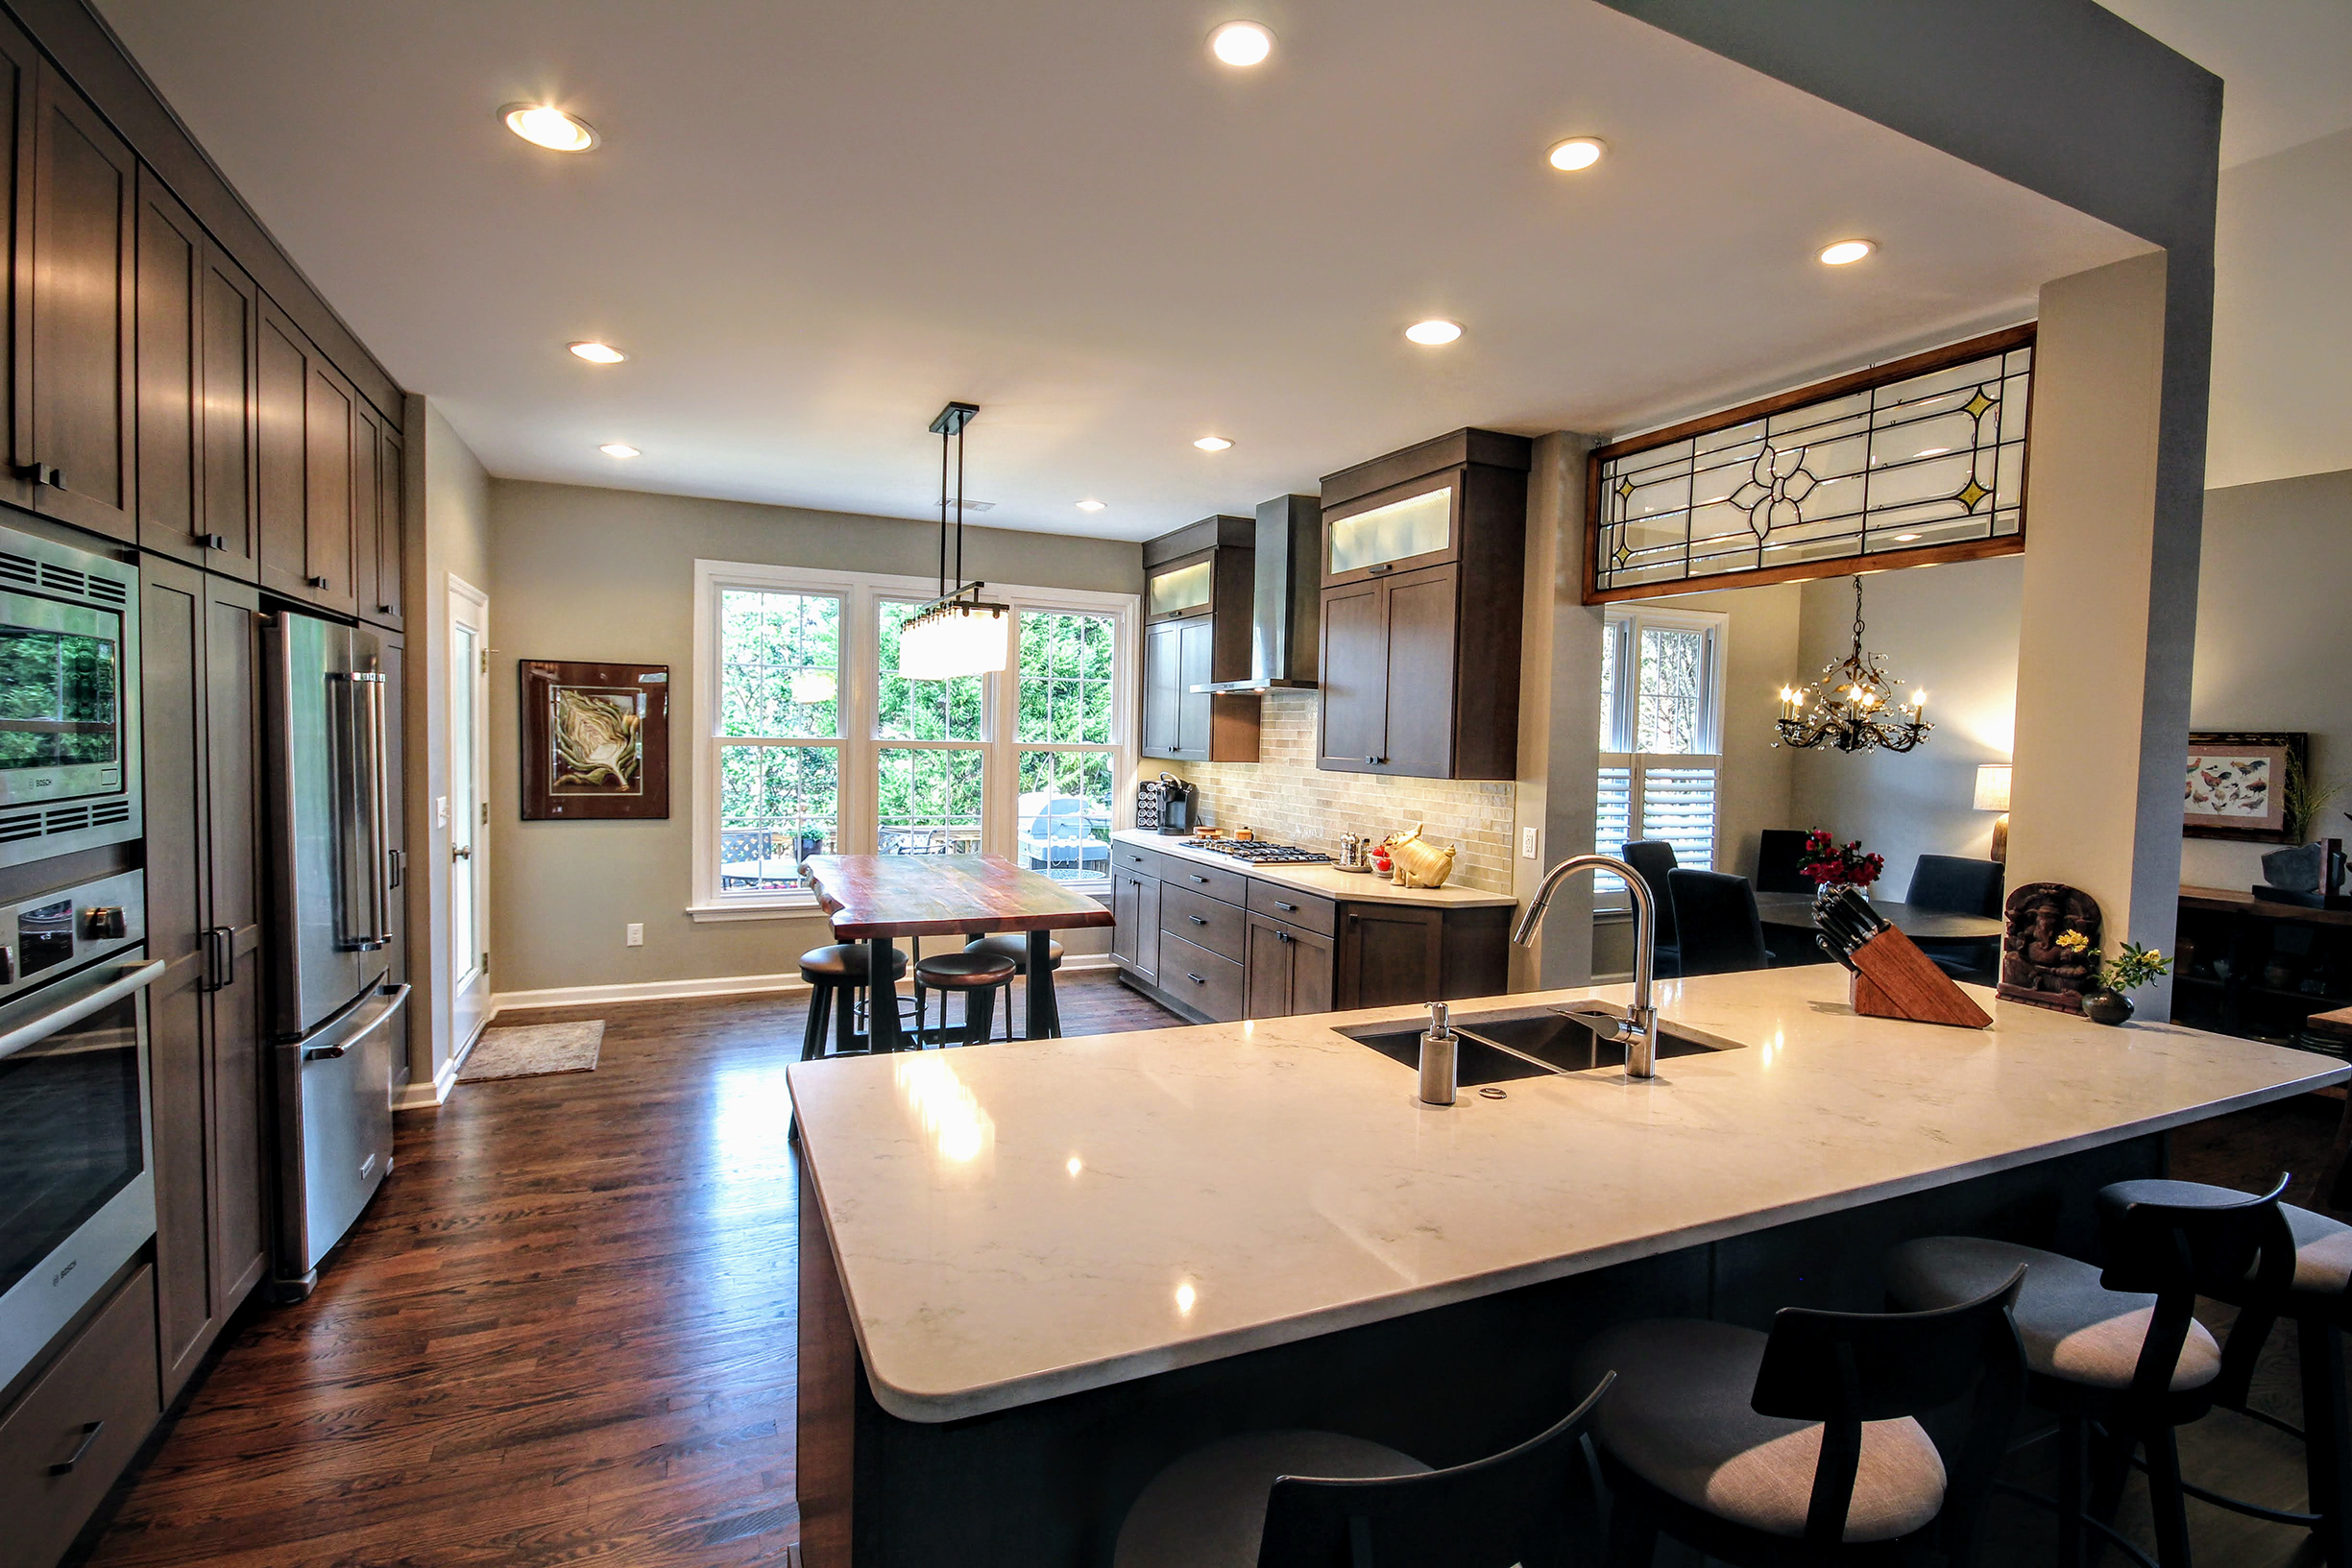 remodeled kitchen project with wood floors and dark cabinets